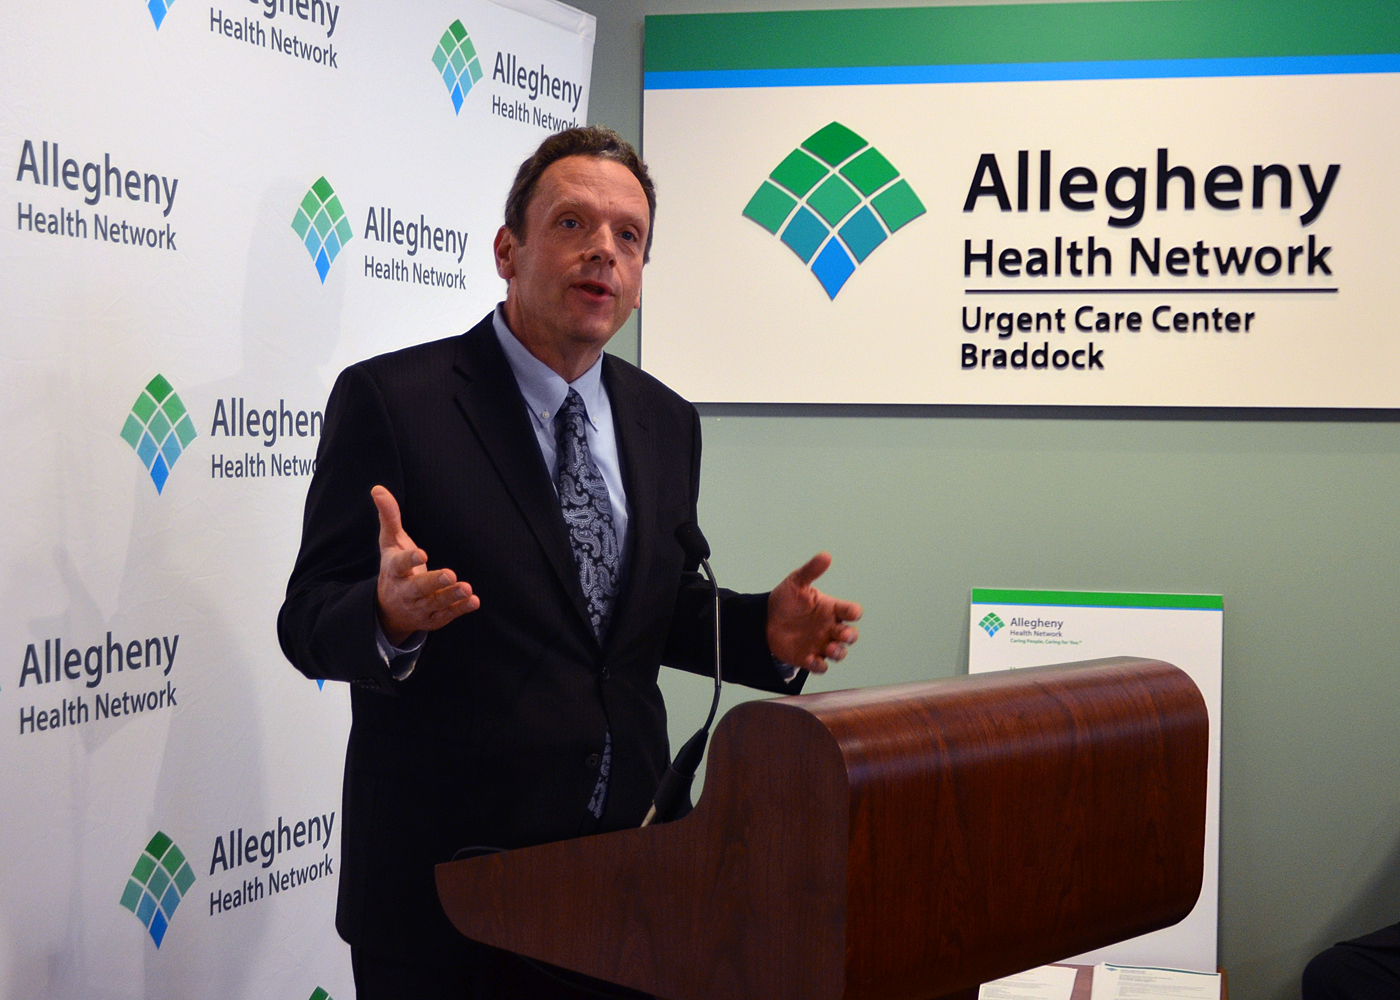 CEO David Holmberg speaking at Allegheny Health Network Urgent Care Center in Braddock